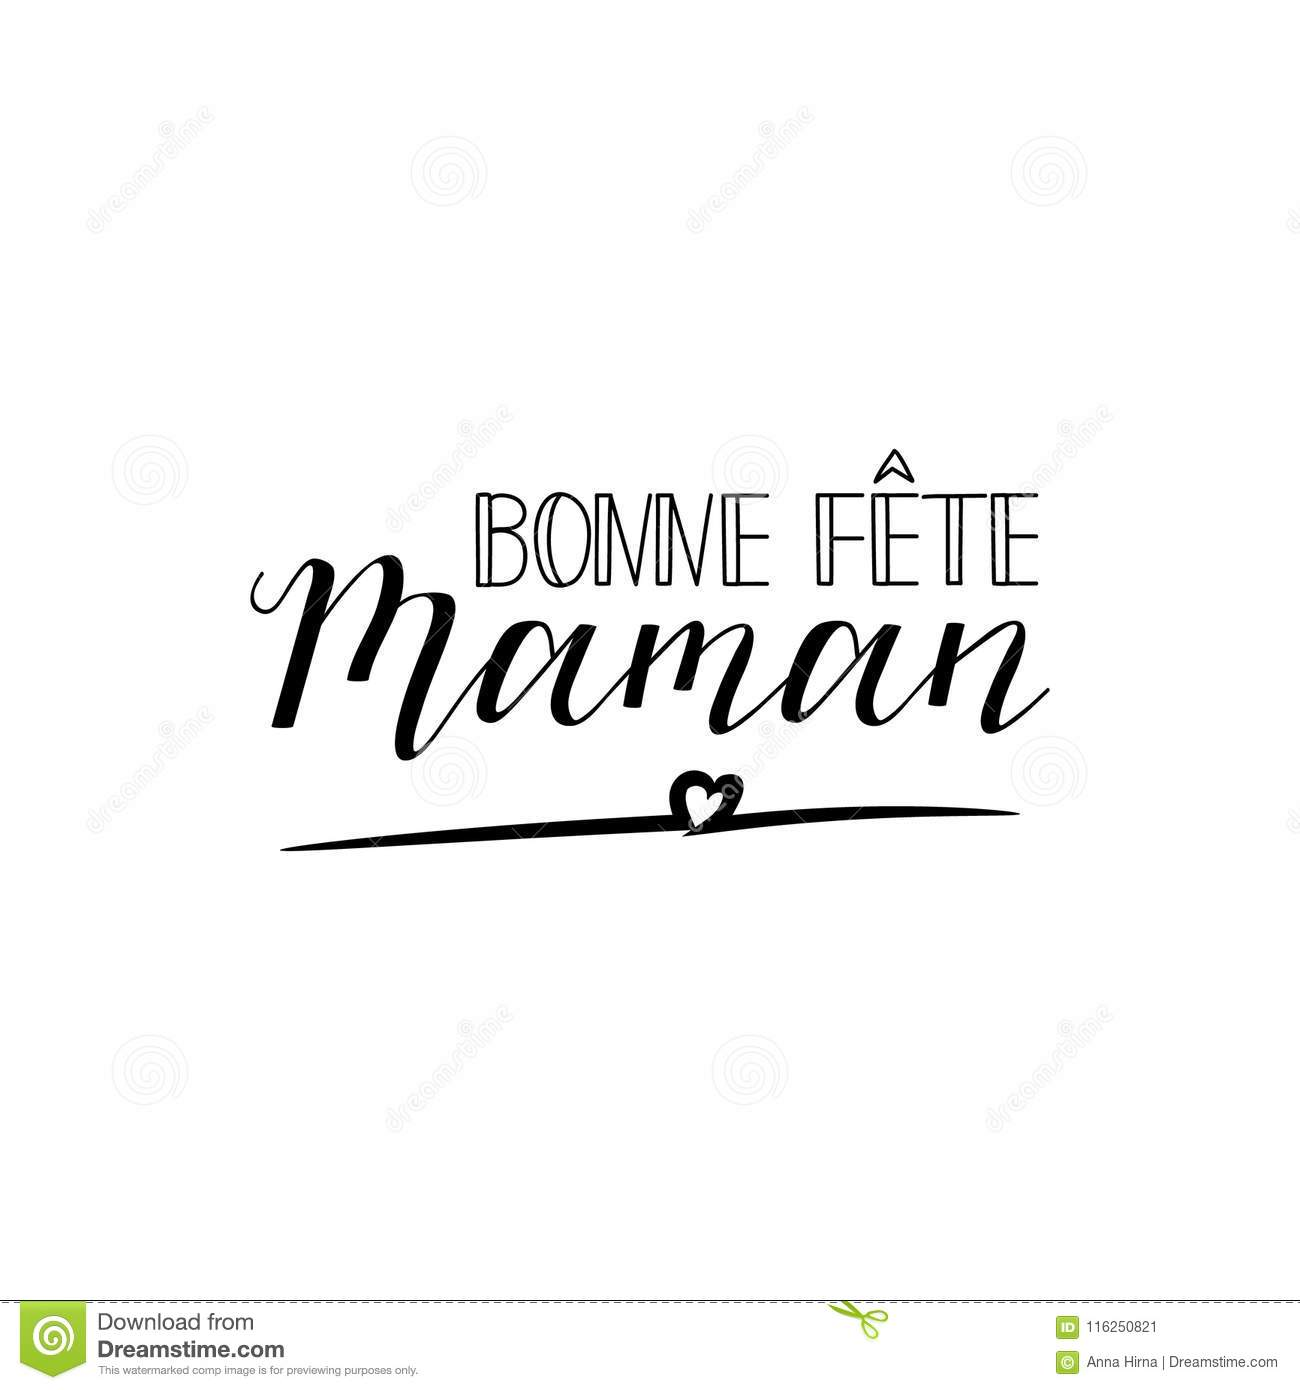 Bonne Fete Maman Happy Mother S Day In French Language Hand Drawn Lettering Background Ink Illustration Stock Illustration Illustration Of Greeting Fete 116250821